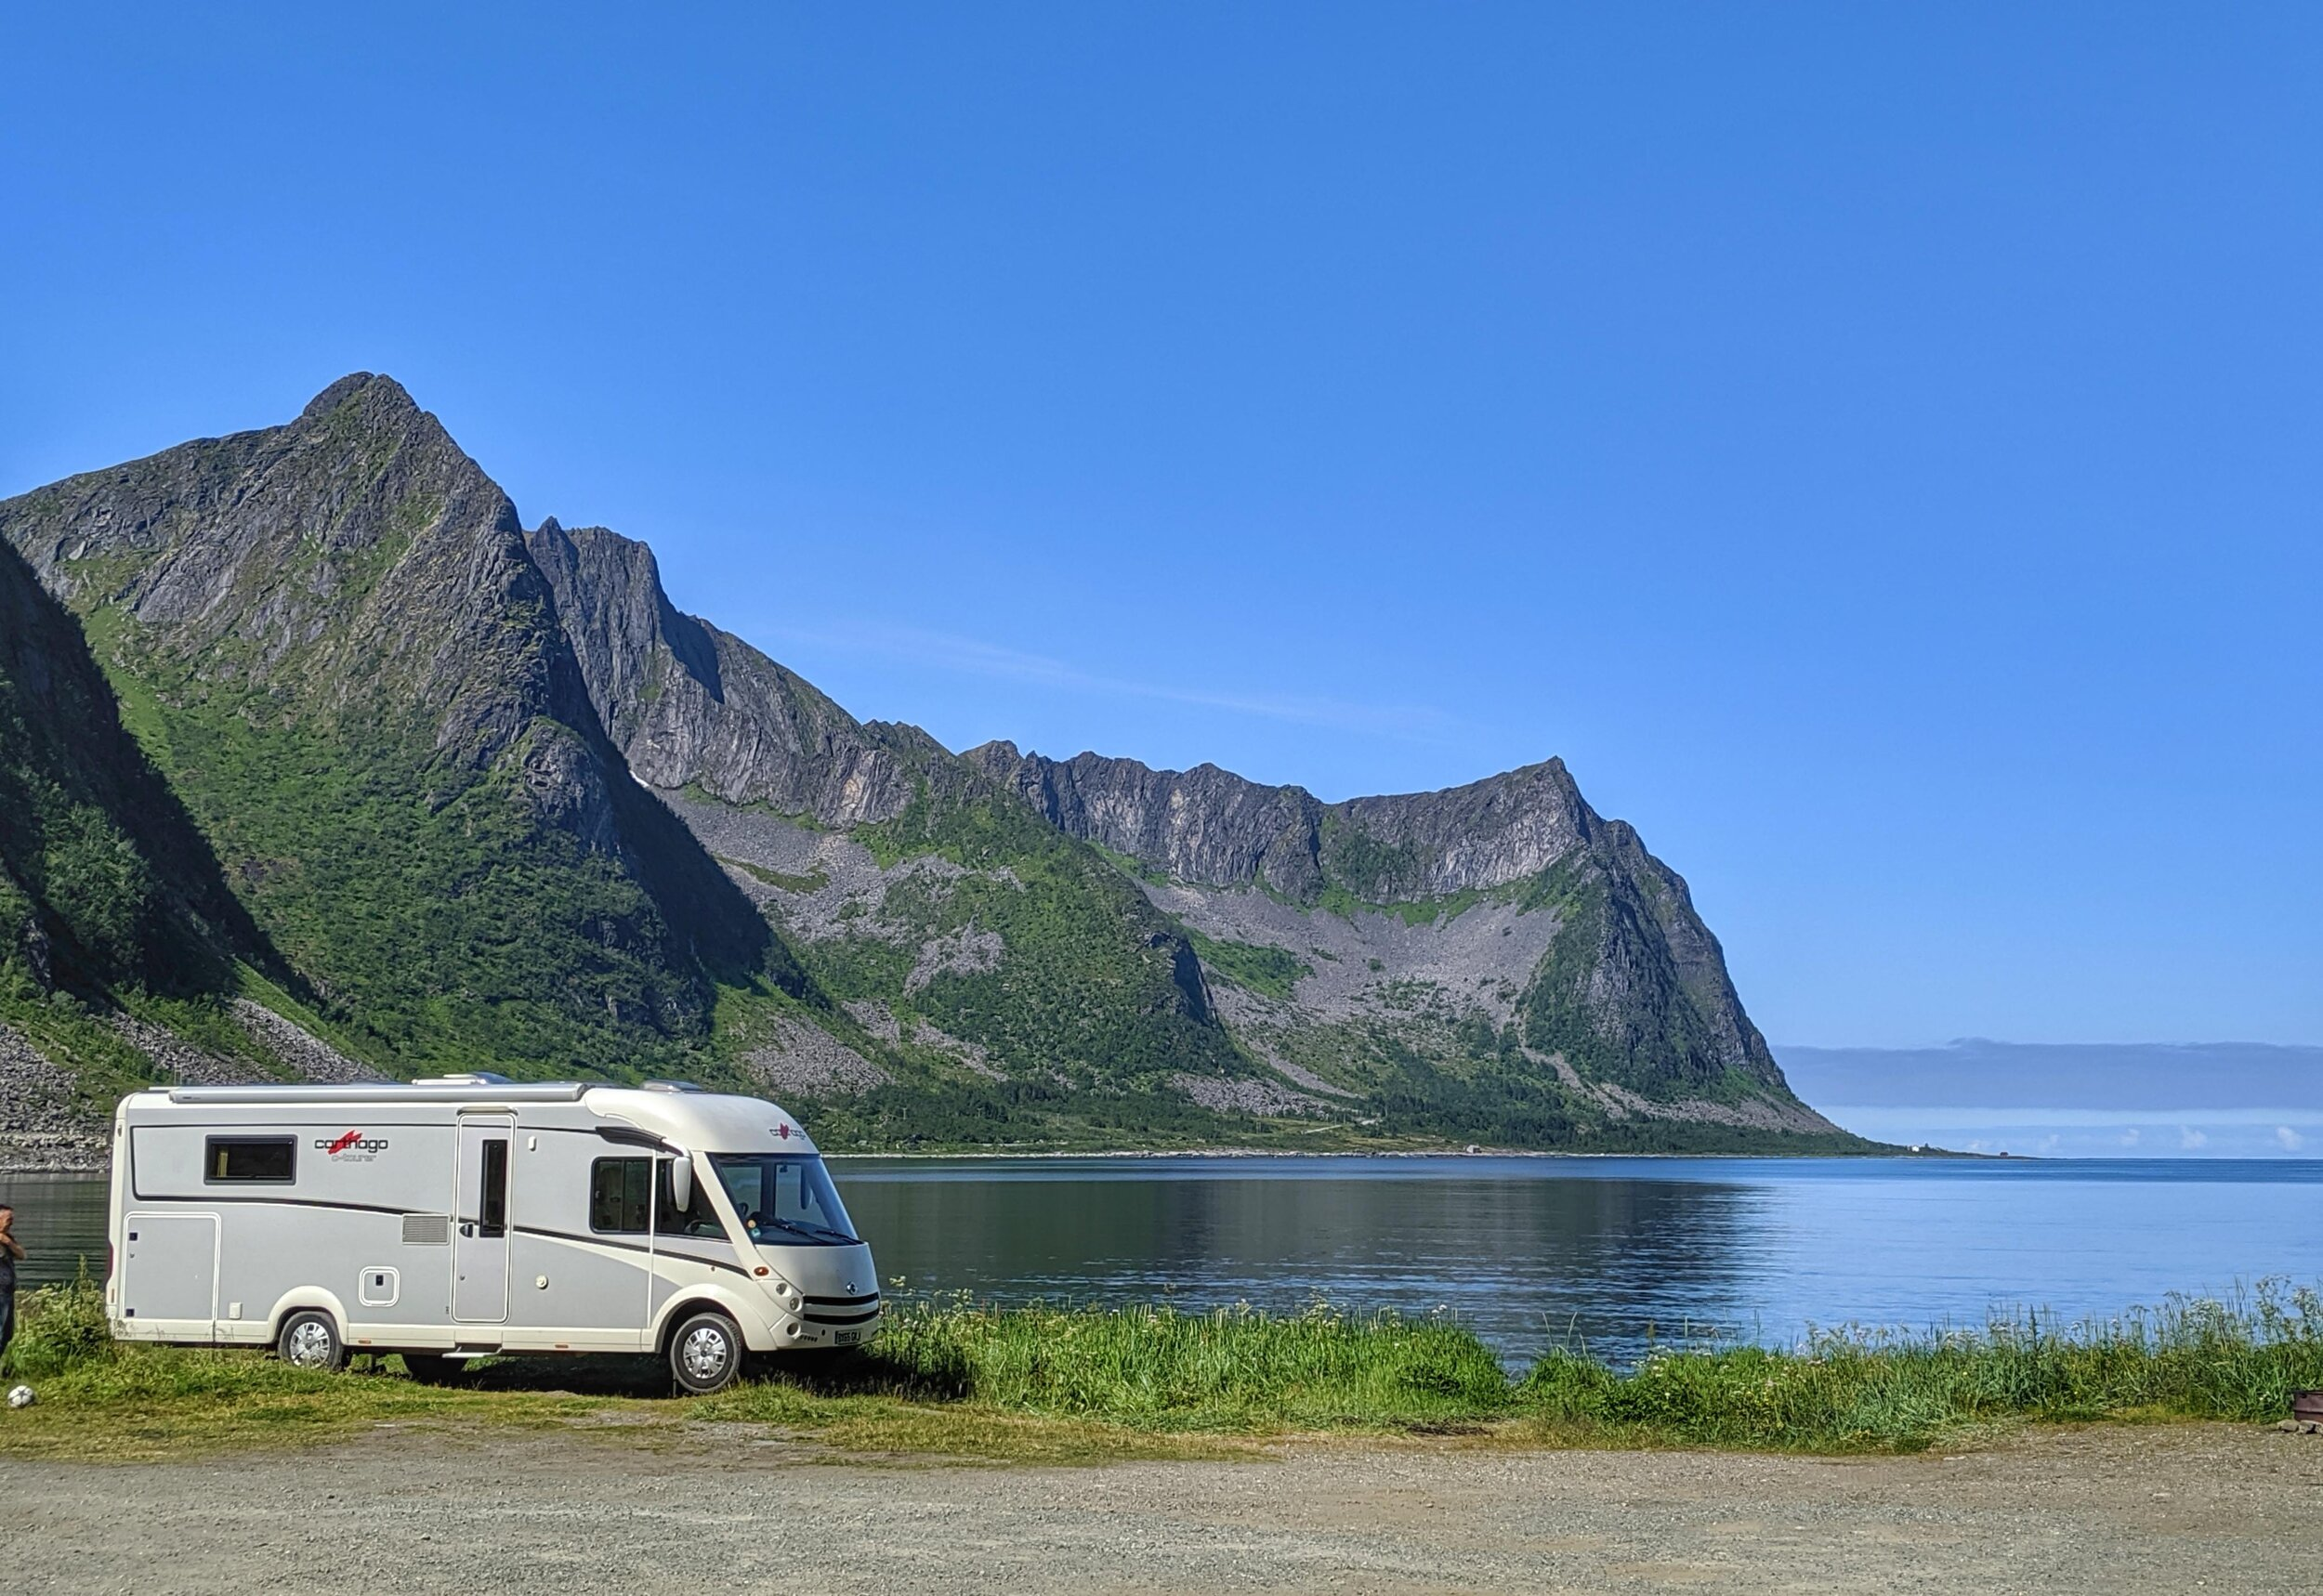 Our fantastic parking spot at Steinfjord